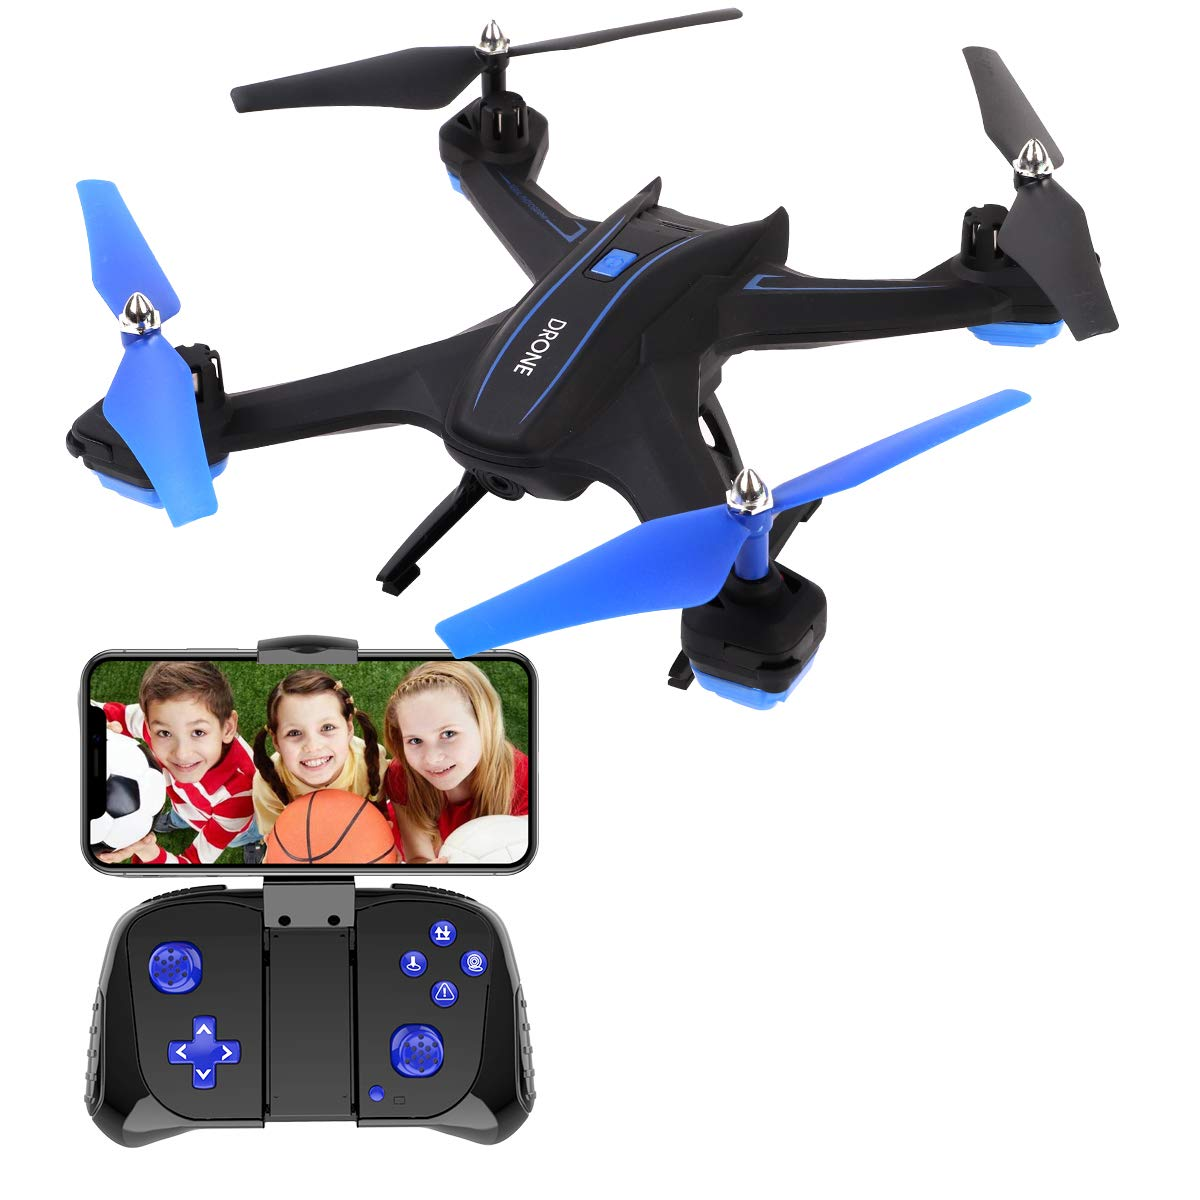 GILOBABY FPV RC Drone with 720P HD Camera Live Video 2.4GHz 6-Axis Gyro Quadcopter for Kids & Beginners - Headless Mode, Altitude Hold, One Key Return best drone cameras